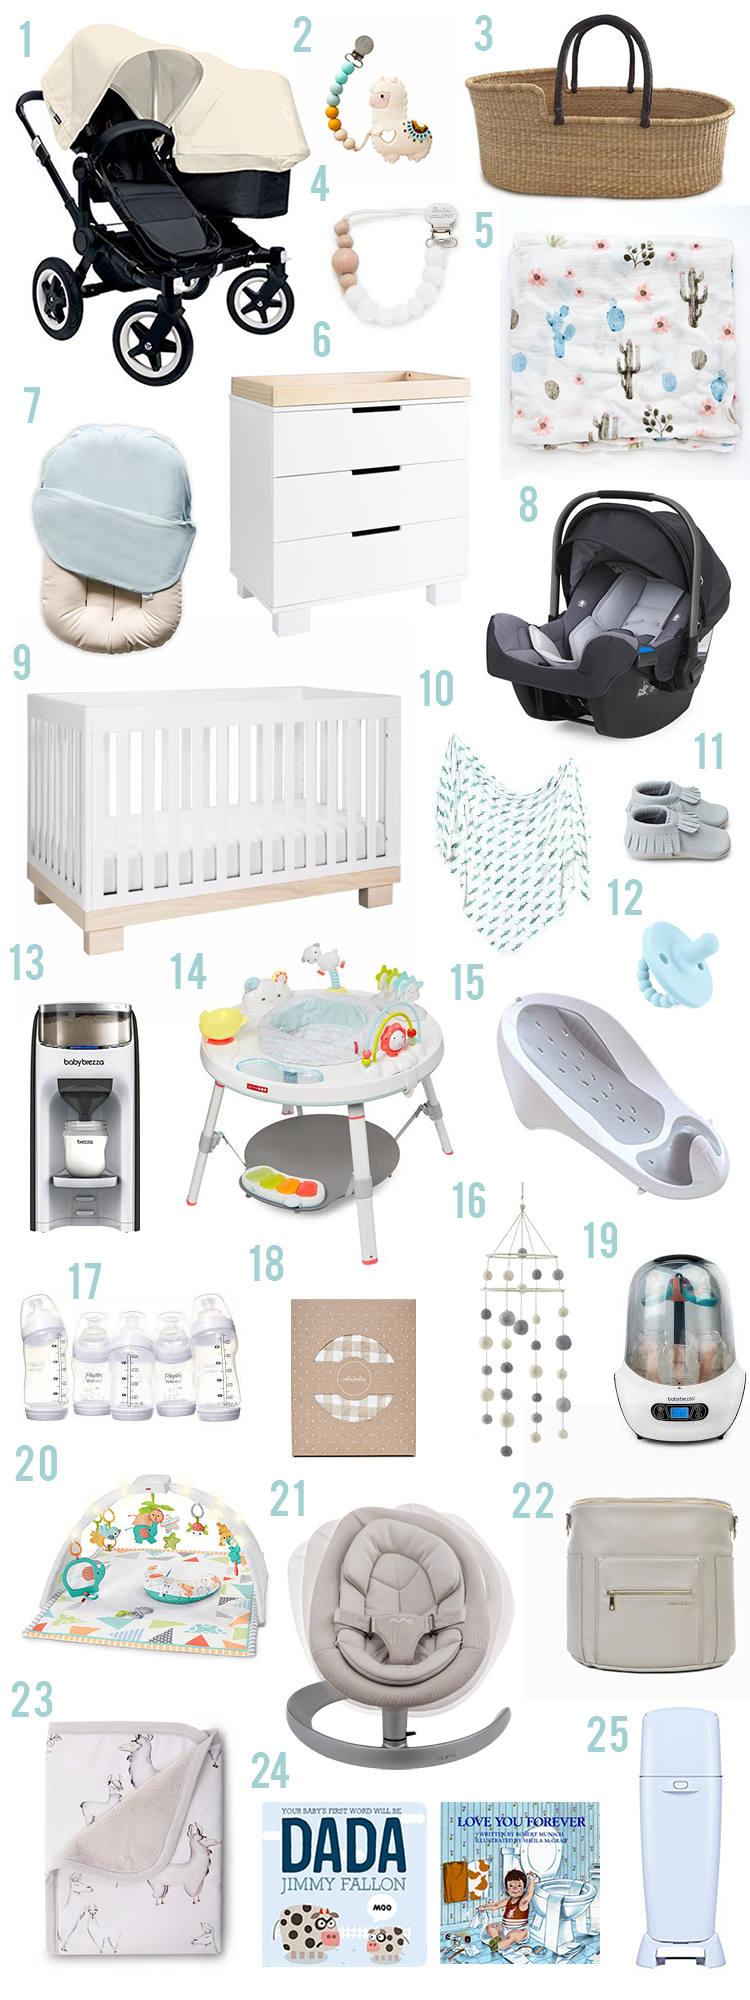 The 25 best baby products of 2019